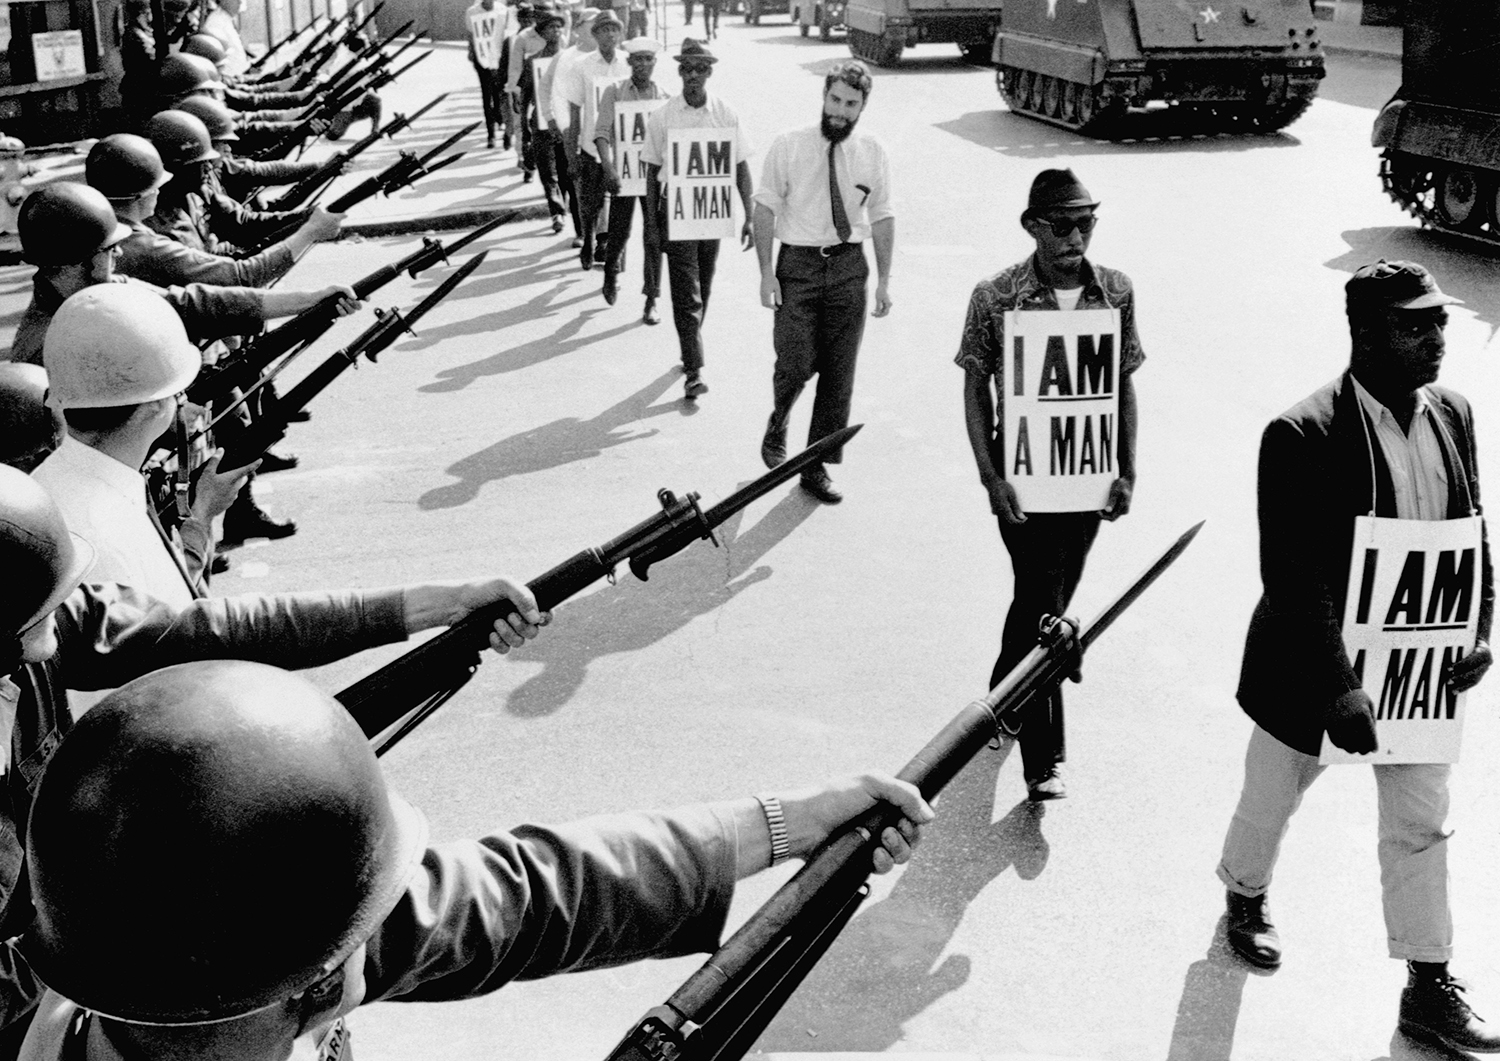 """Civil Rights activists carrying """"I Am a Man"""" placards are blocked by National Guardsmen during a protest in Memphis, Tennessee, in 1968."""